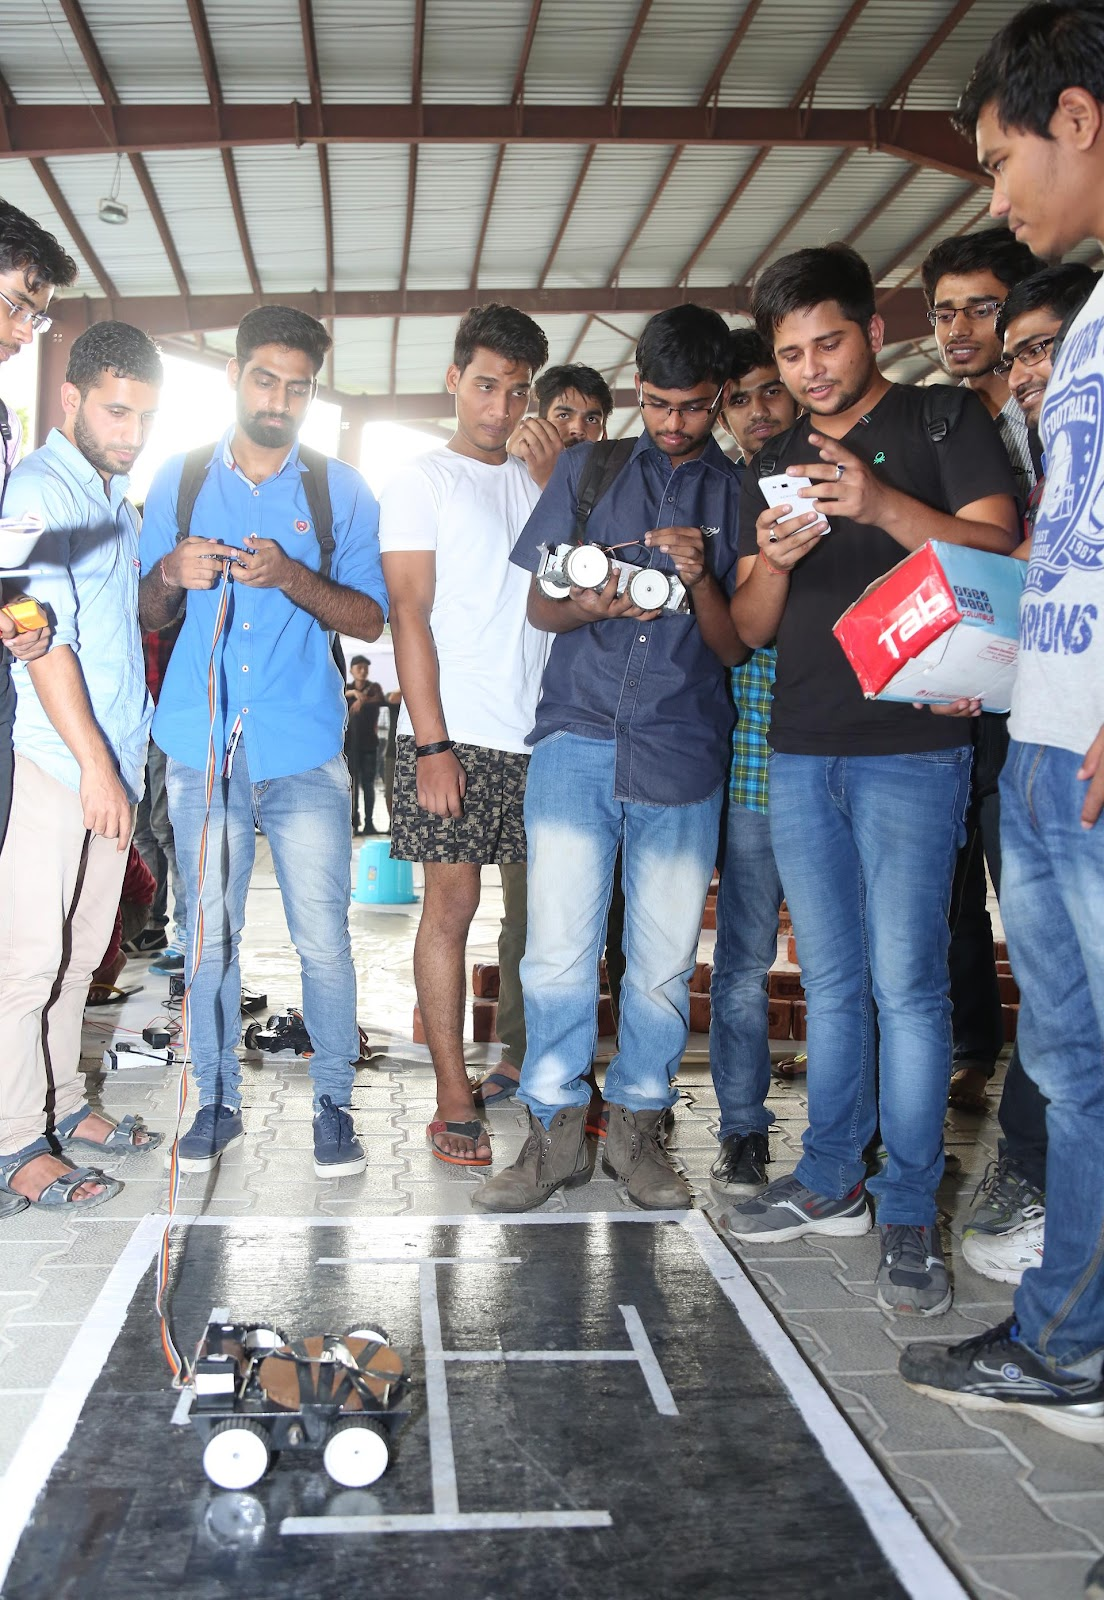 Students participating in technical events competition during concluding day of Youth Vibe fest at LPU.JPG